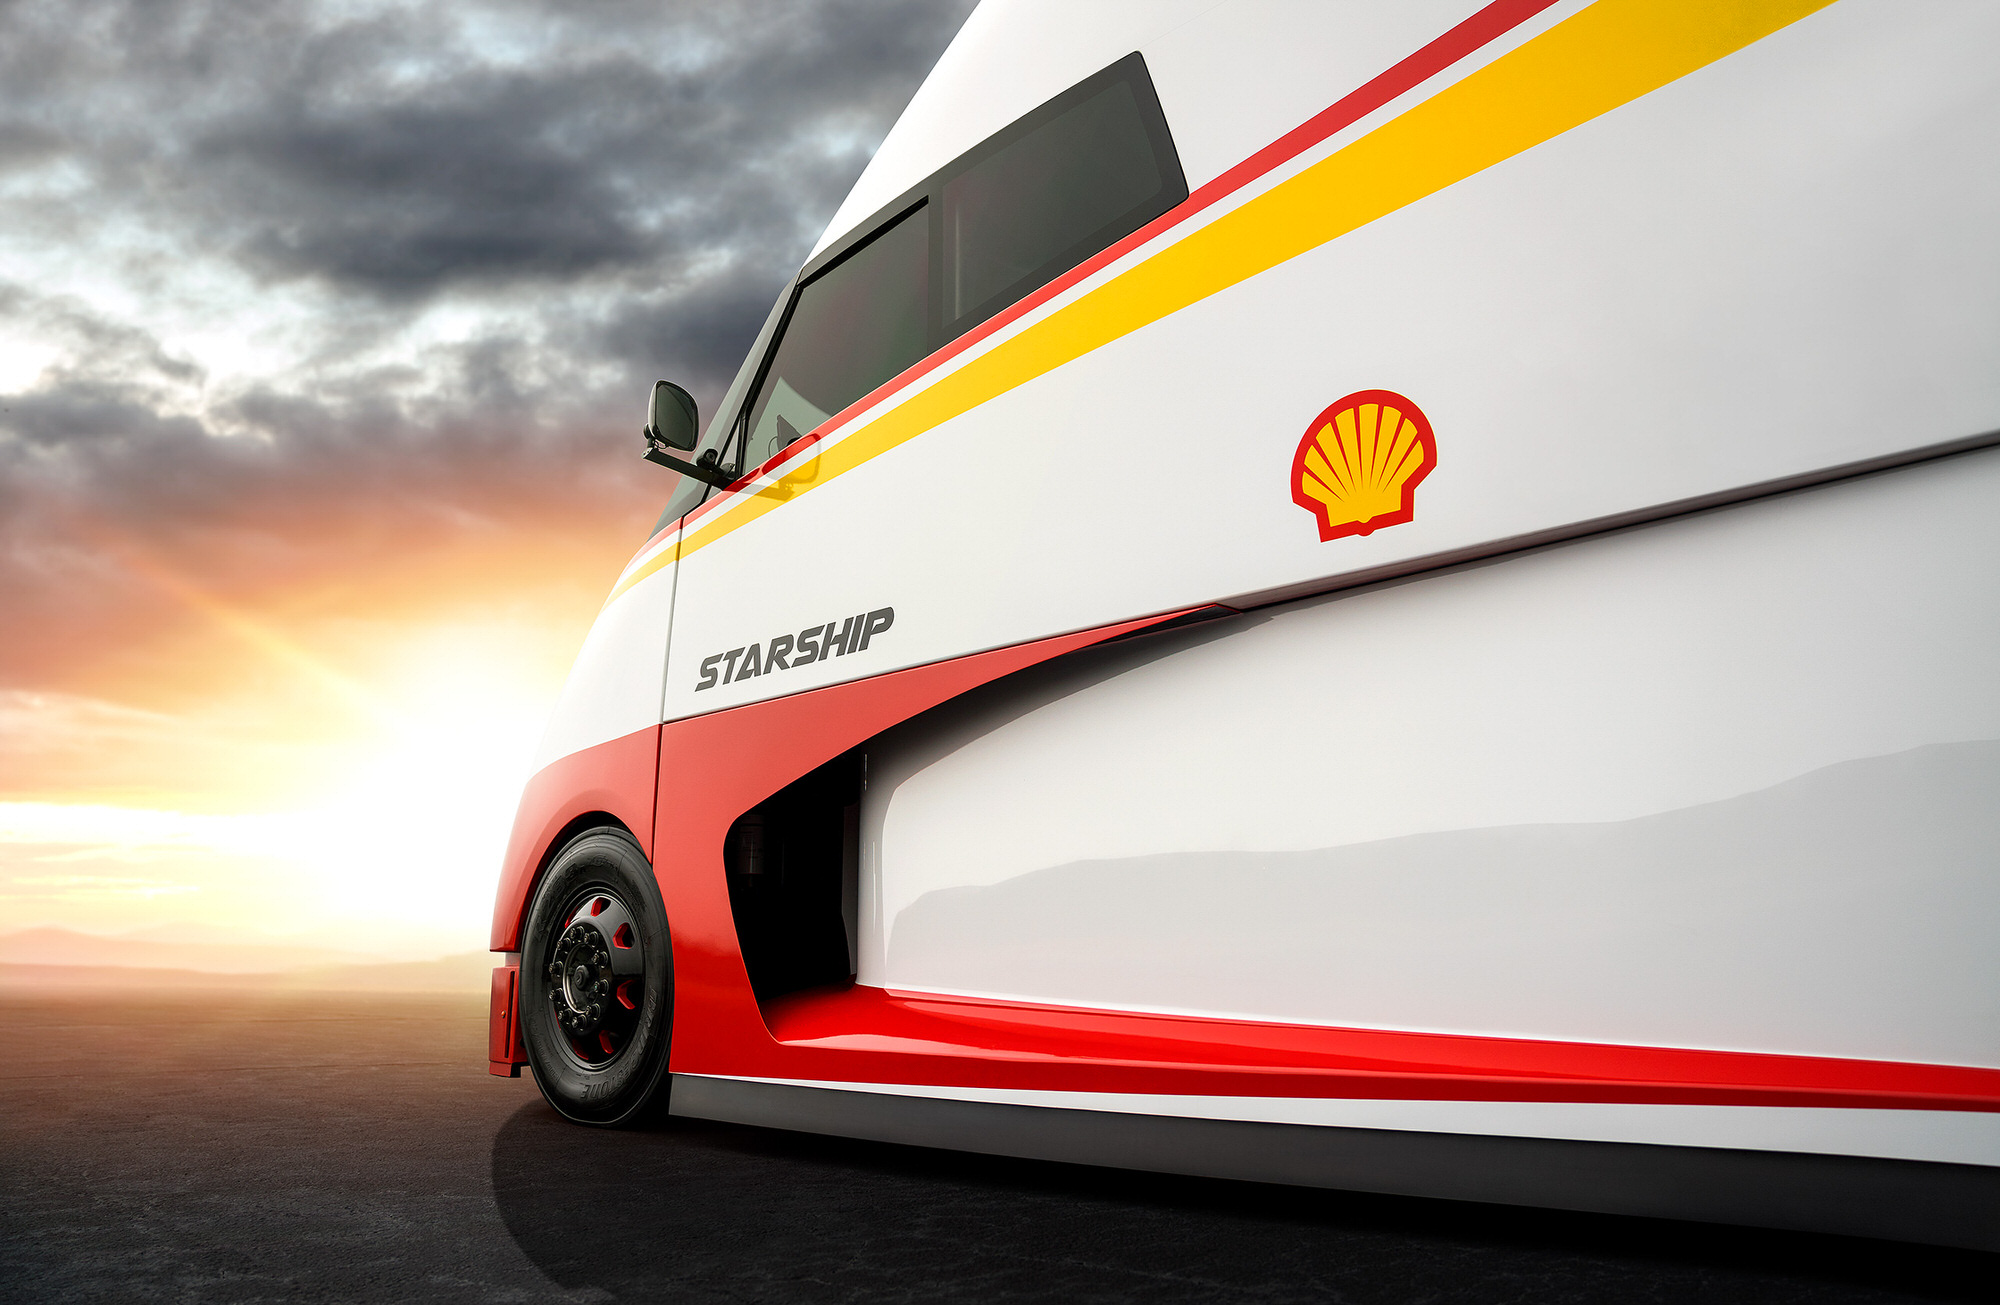 Hyper-Fuel Efficient Shell Starship Airflow Truck Company